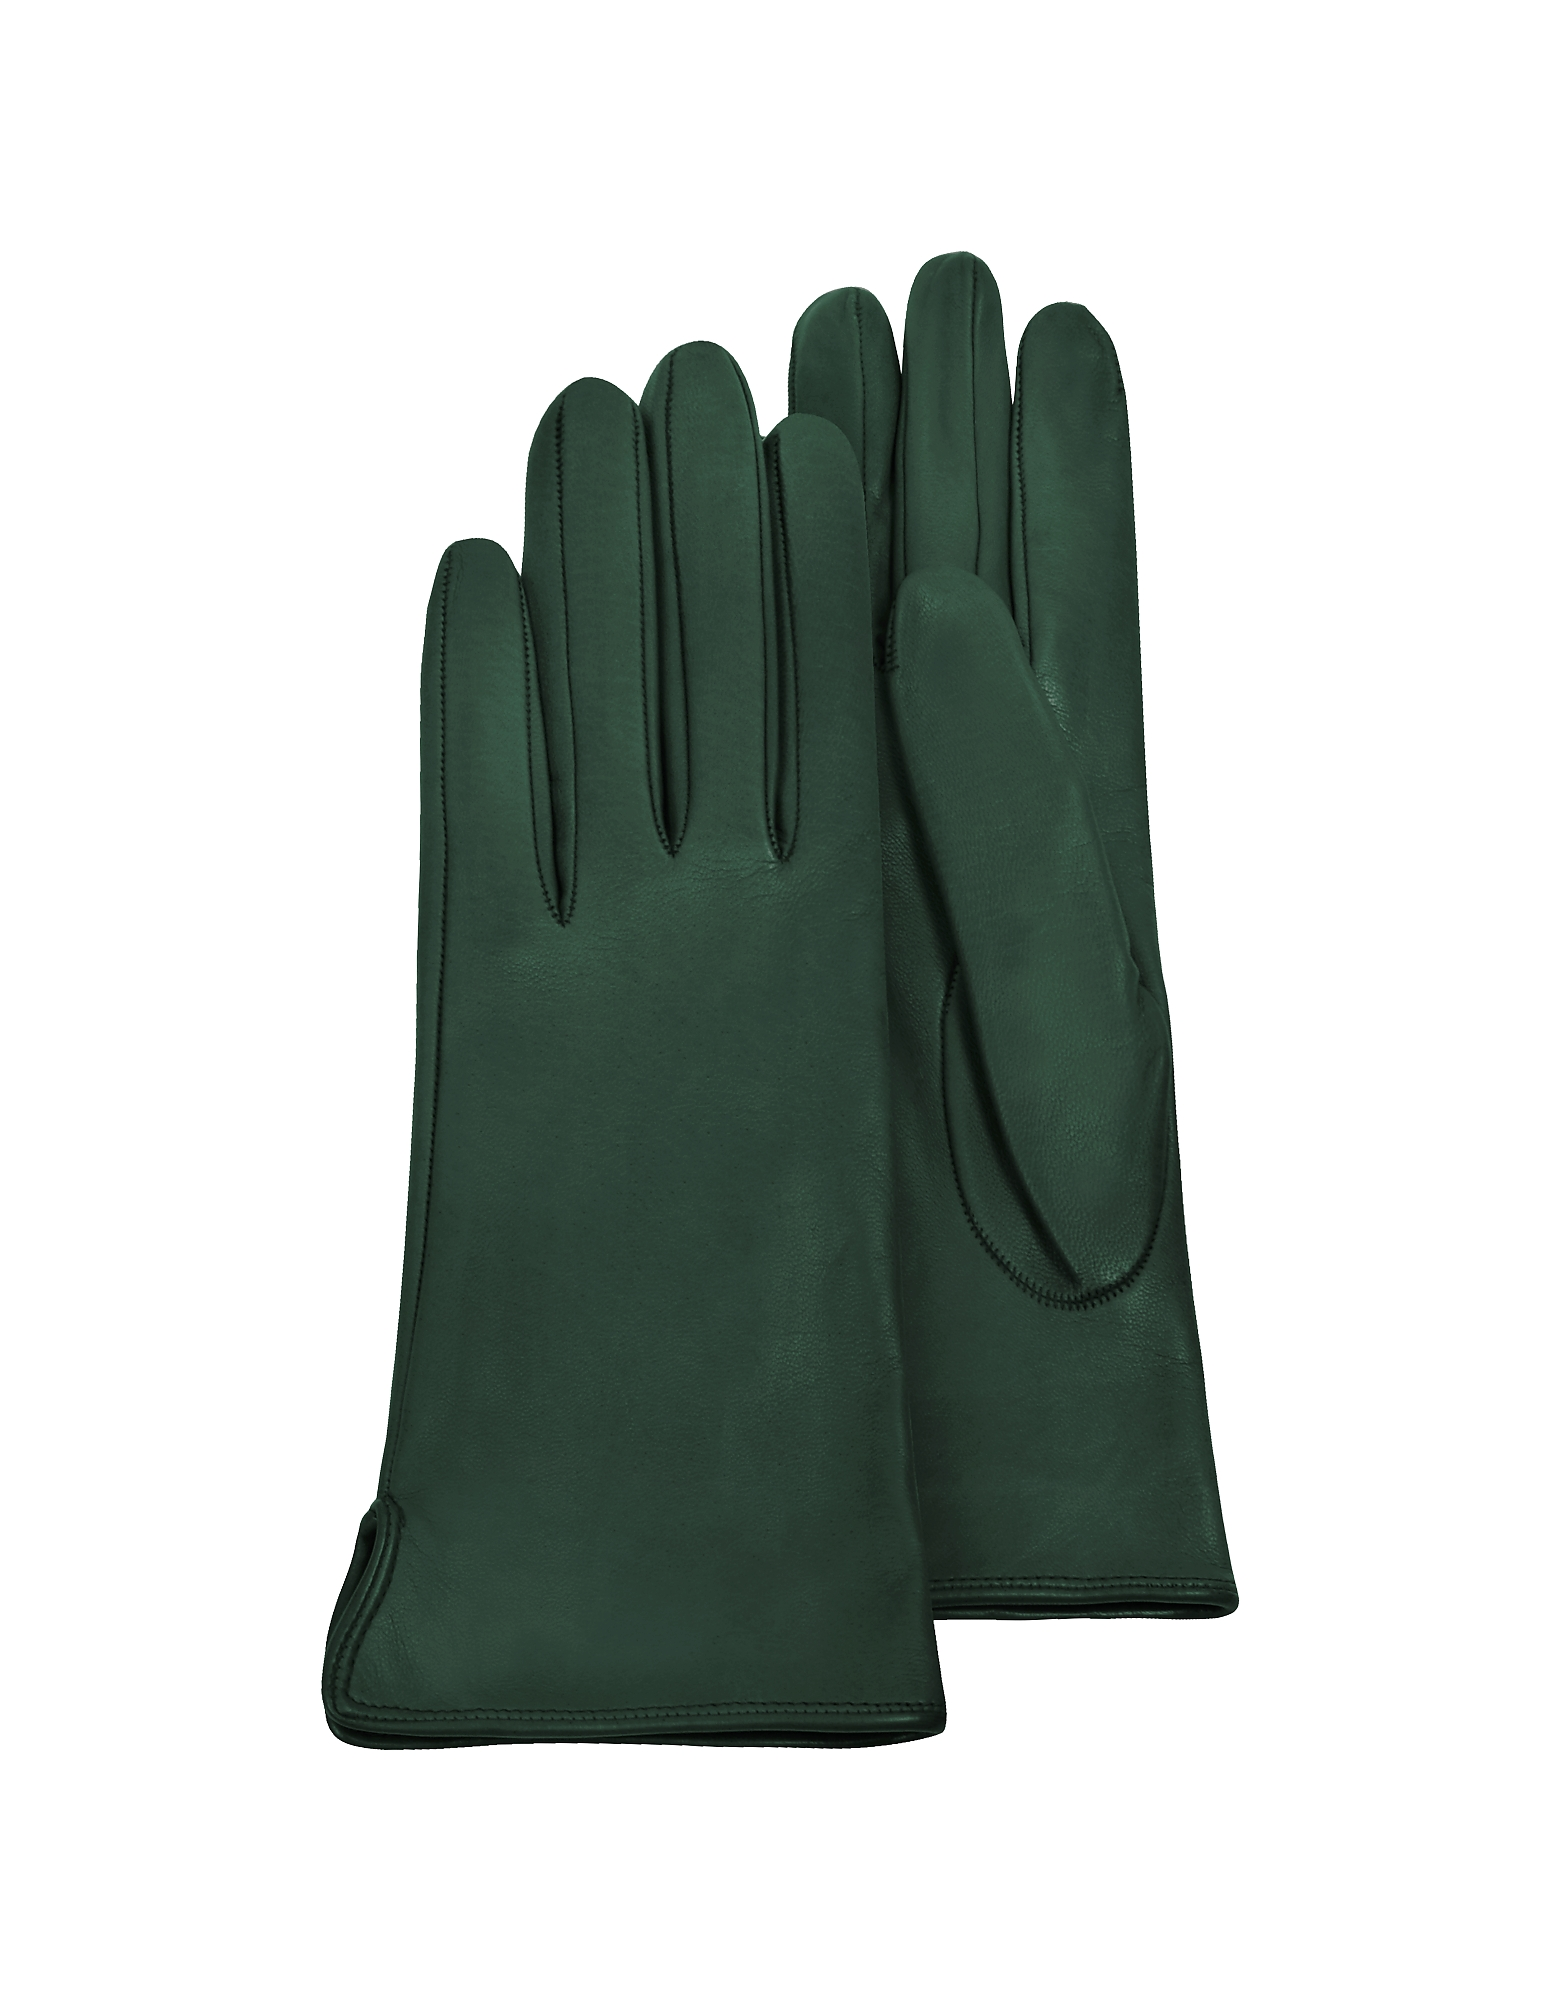 Forzieri Women's Gloves, Forest Green Calf Leather Women's Gloves w/Silk Lining